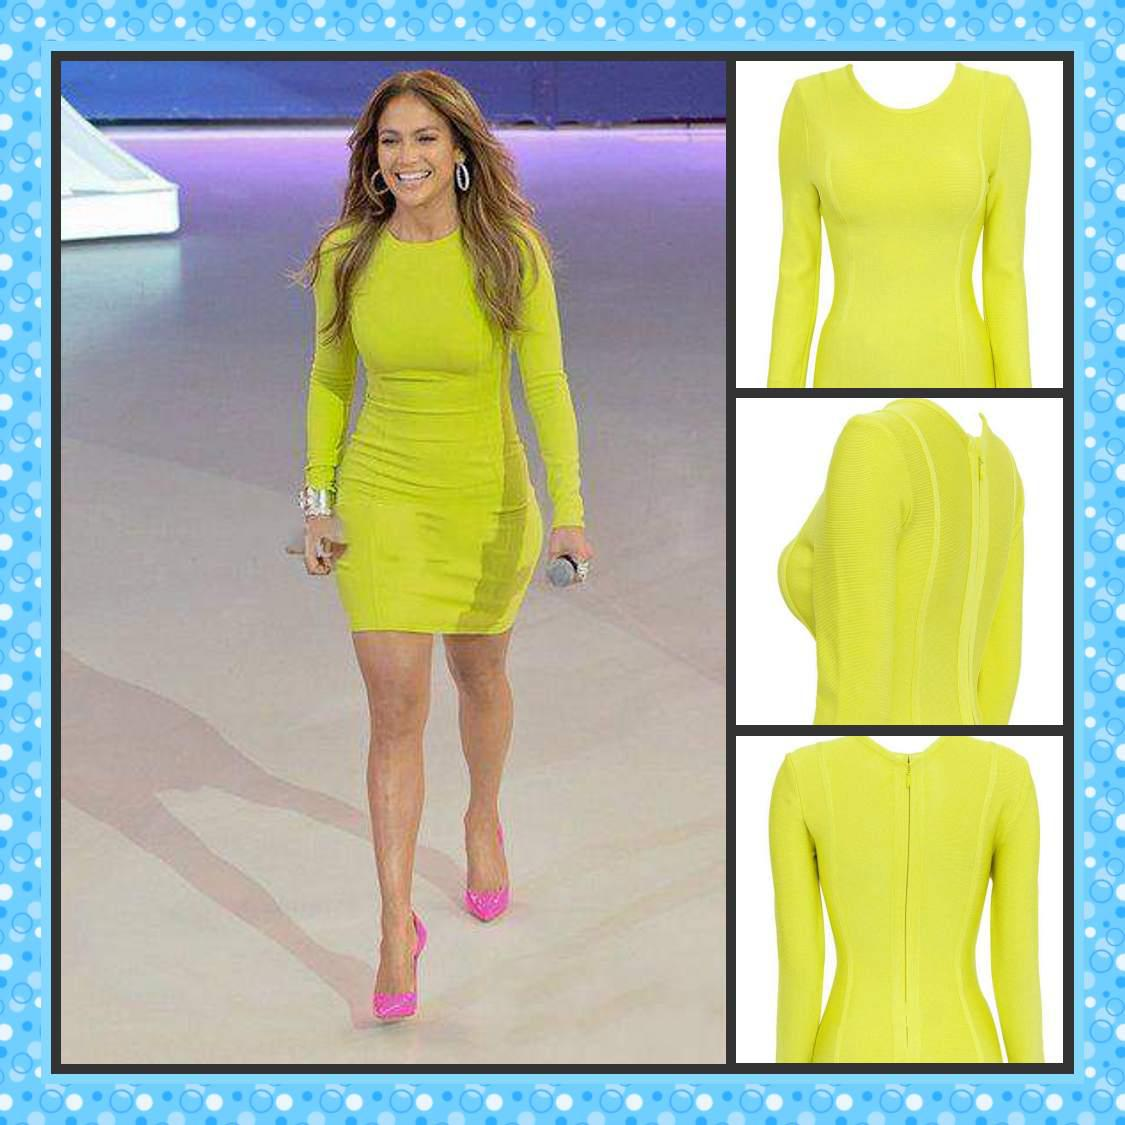 New Arrival 2013 Cocktail Dress Sheath Long Sleeve 'carly' Lime ...